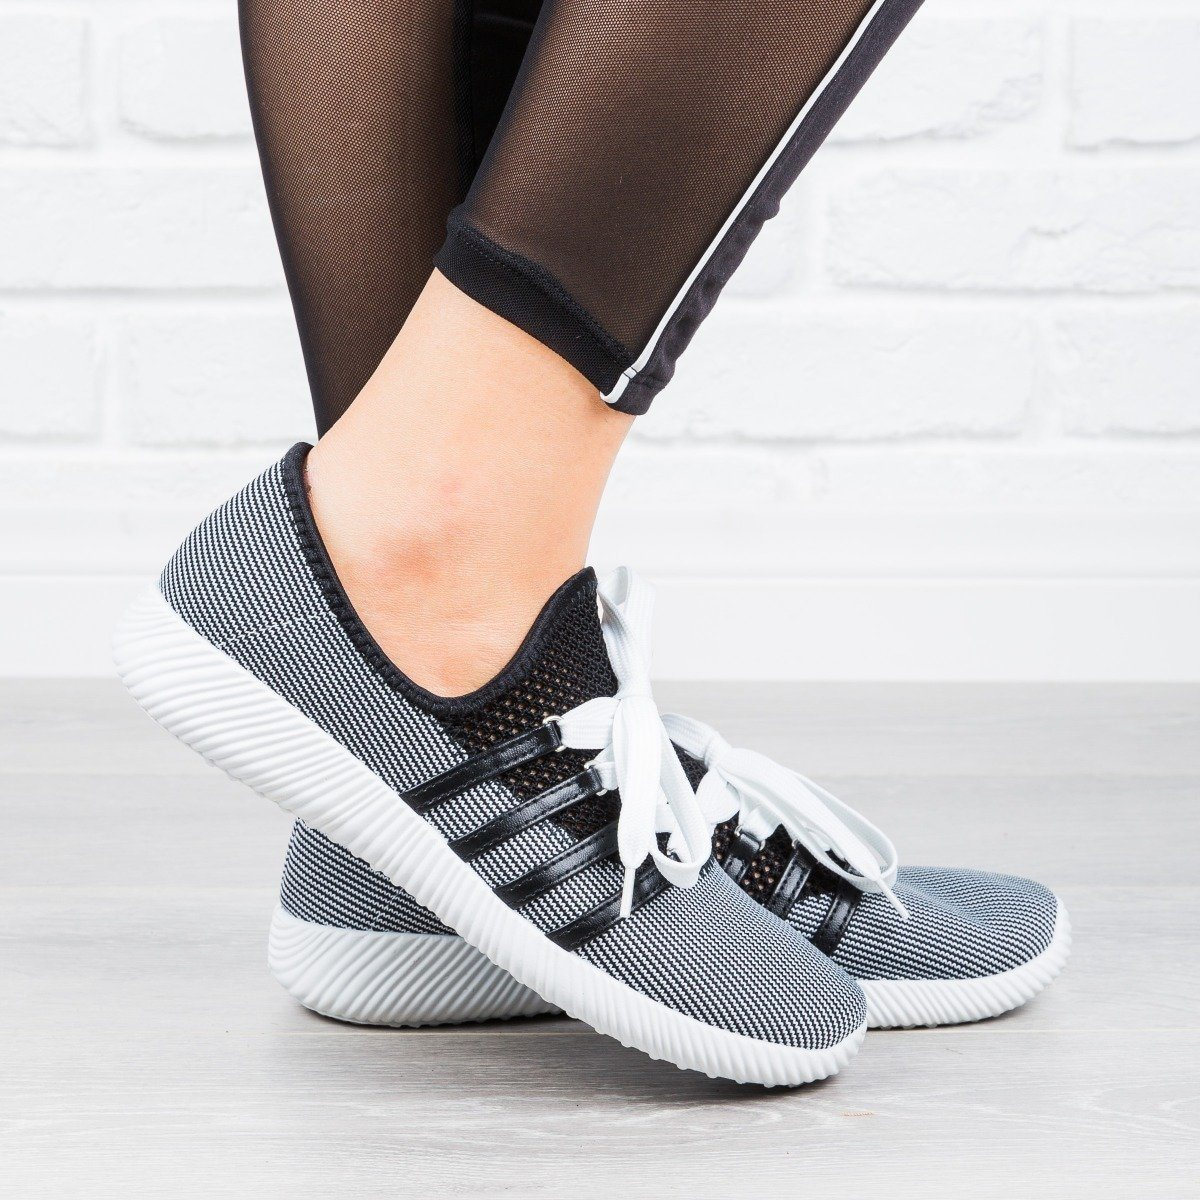 Trendy Lace-Up Sneakers Qupid Shoes